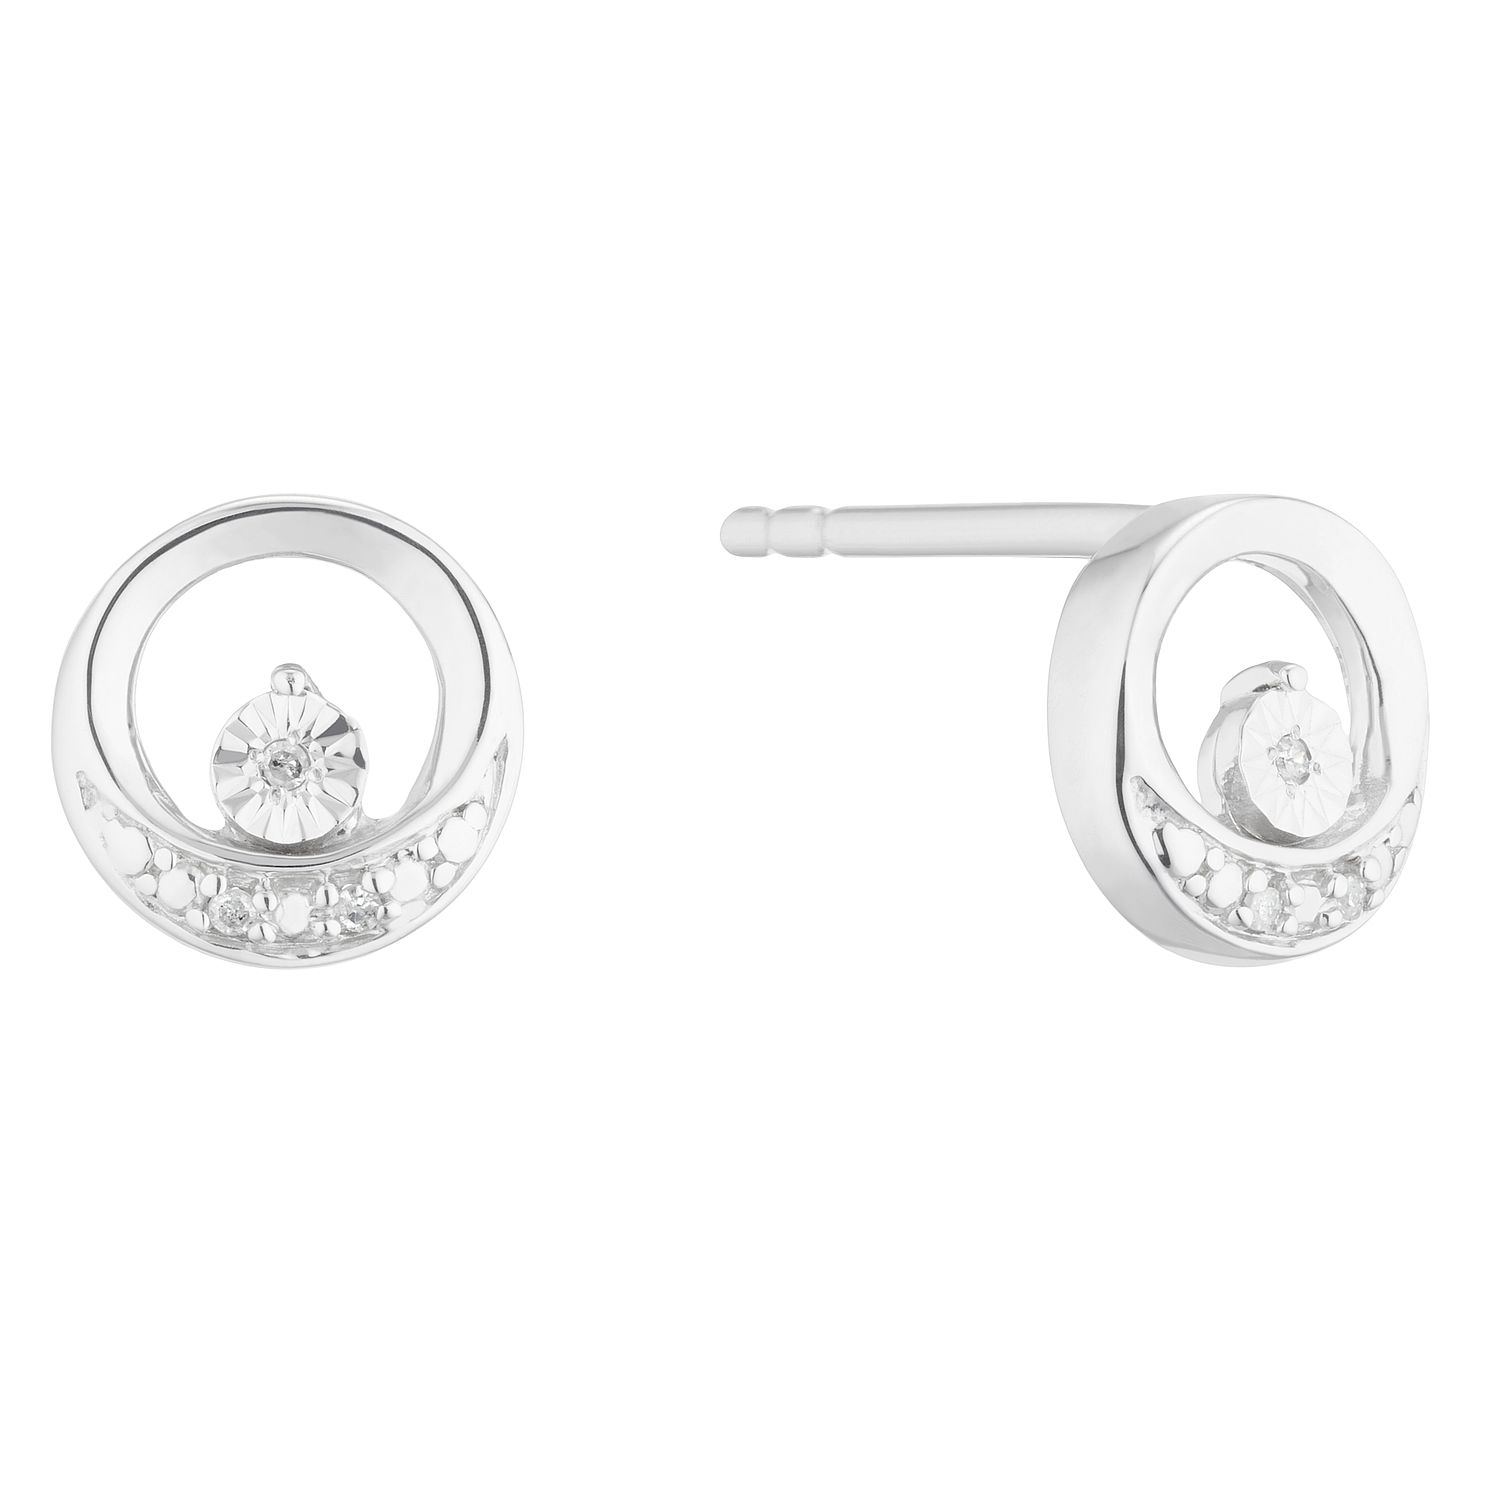 Silver Diamond Open Circle Stud Earrings - Product number 5925916